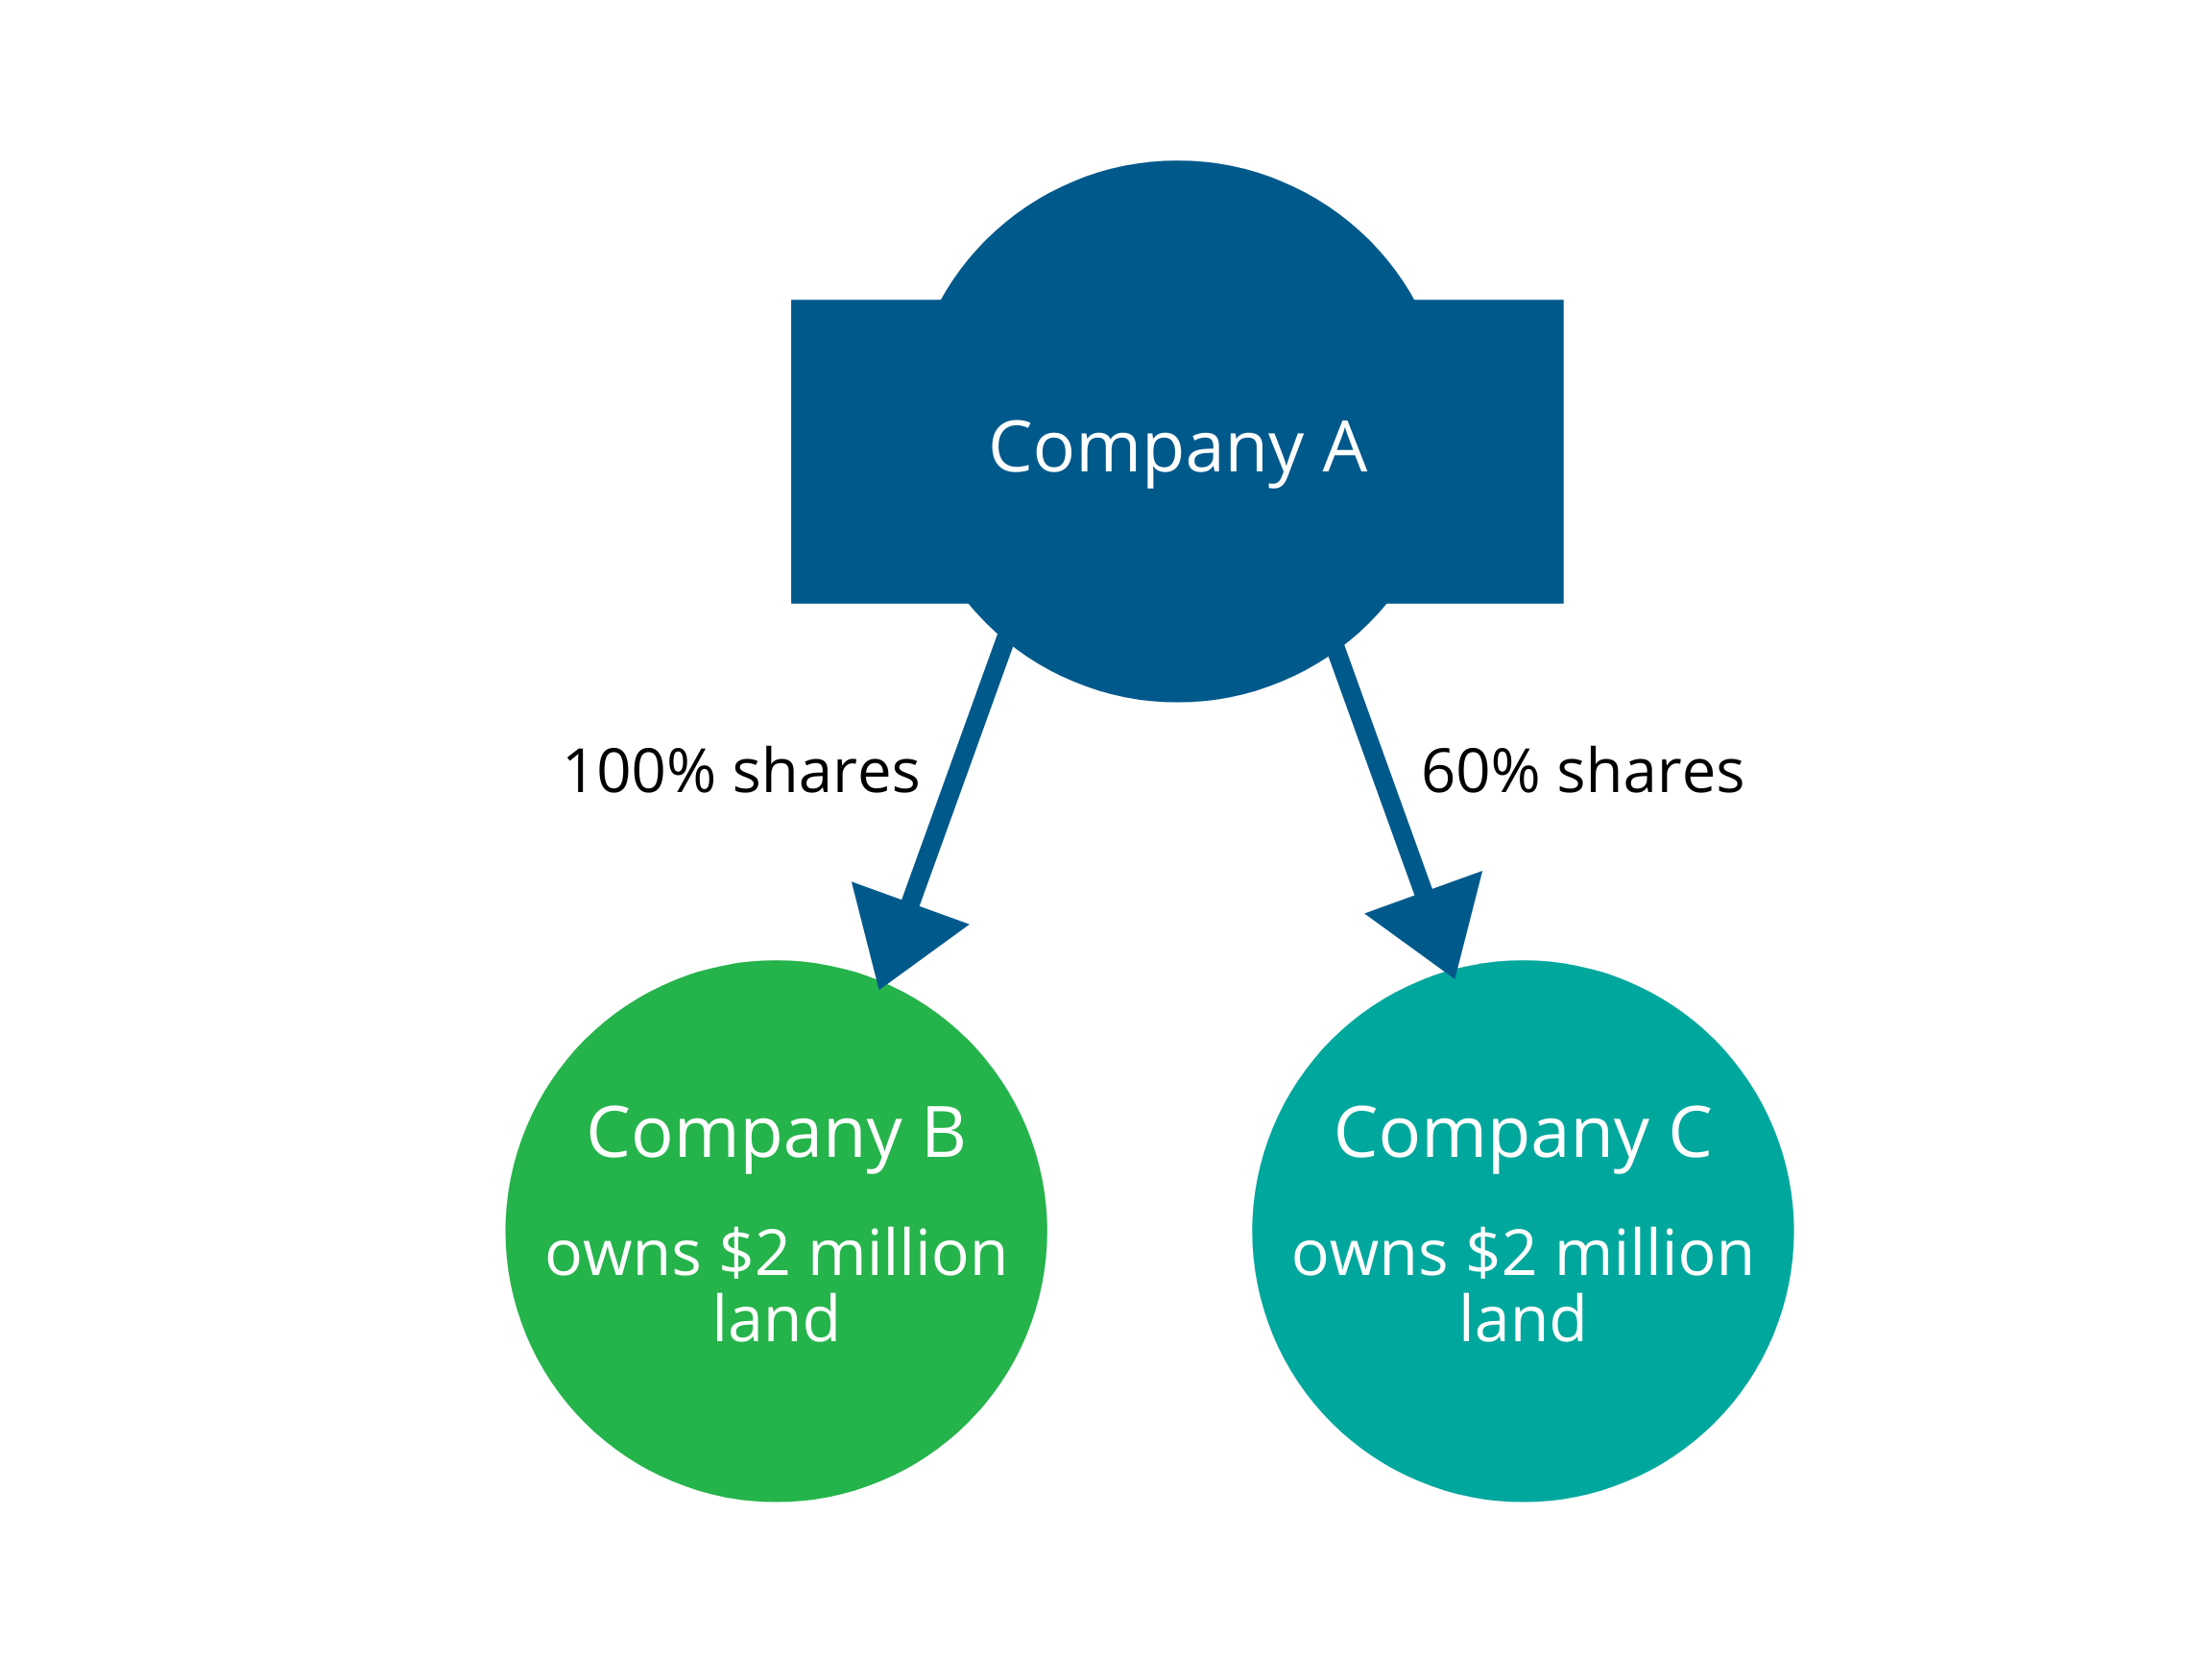 Illustration showing that Company A has 100% shares in Company B and 60% shares in Company C